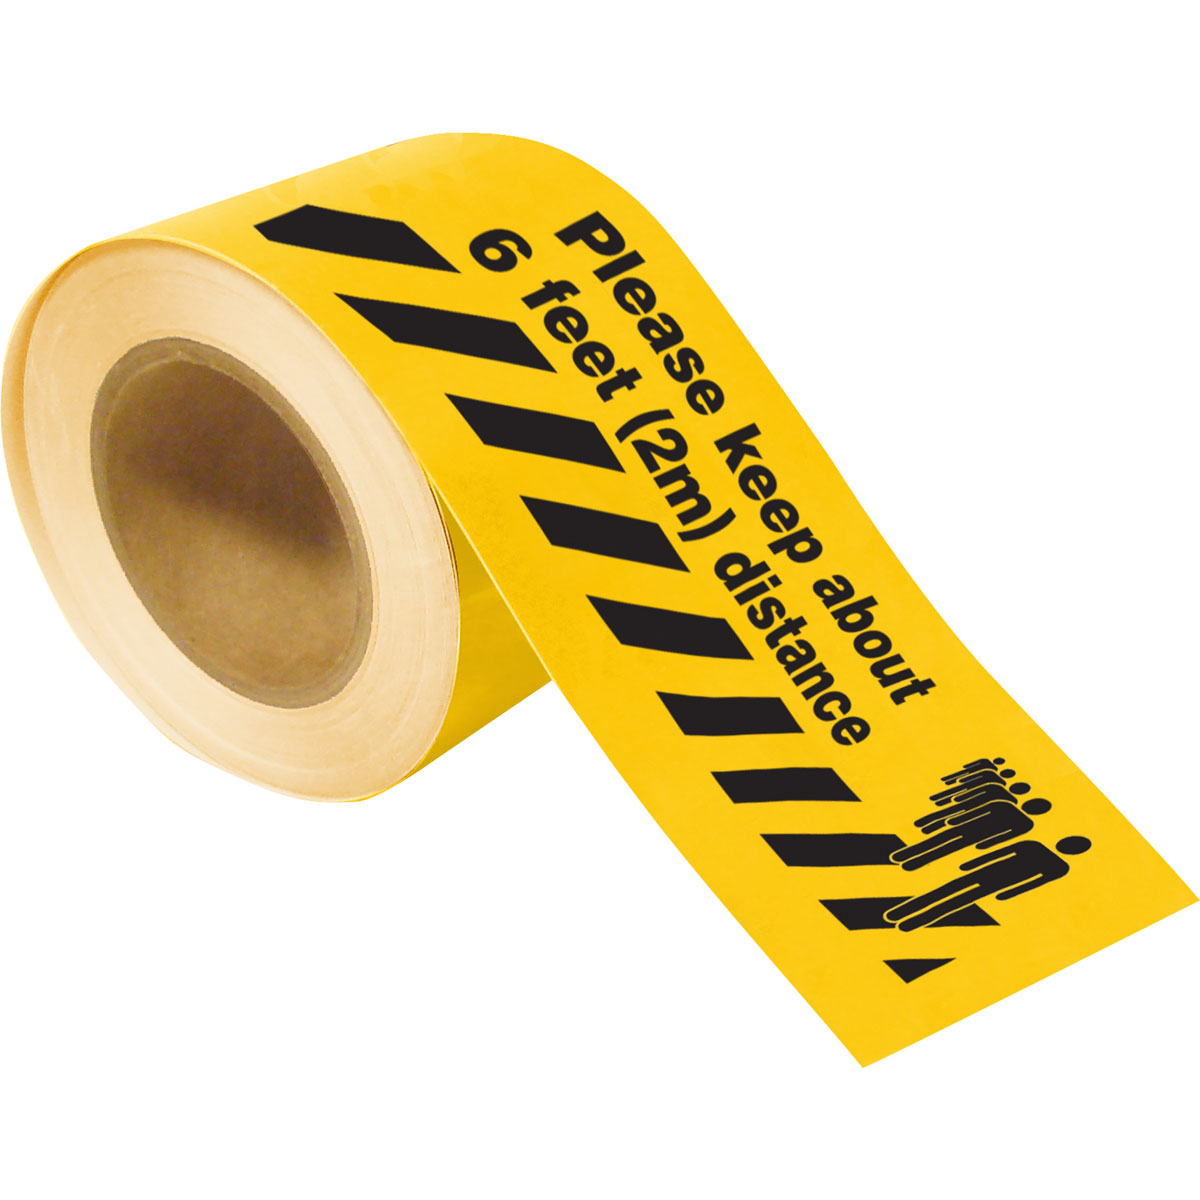 """Brady 170216 Social Distancing Polyester Floor Tape, Black on Yellow, 4"""" x 100'"""